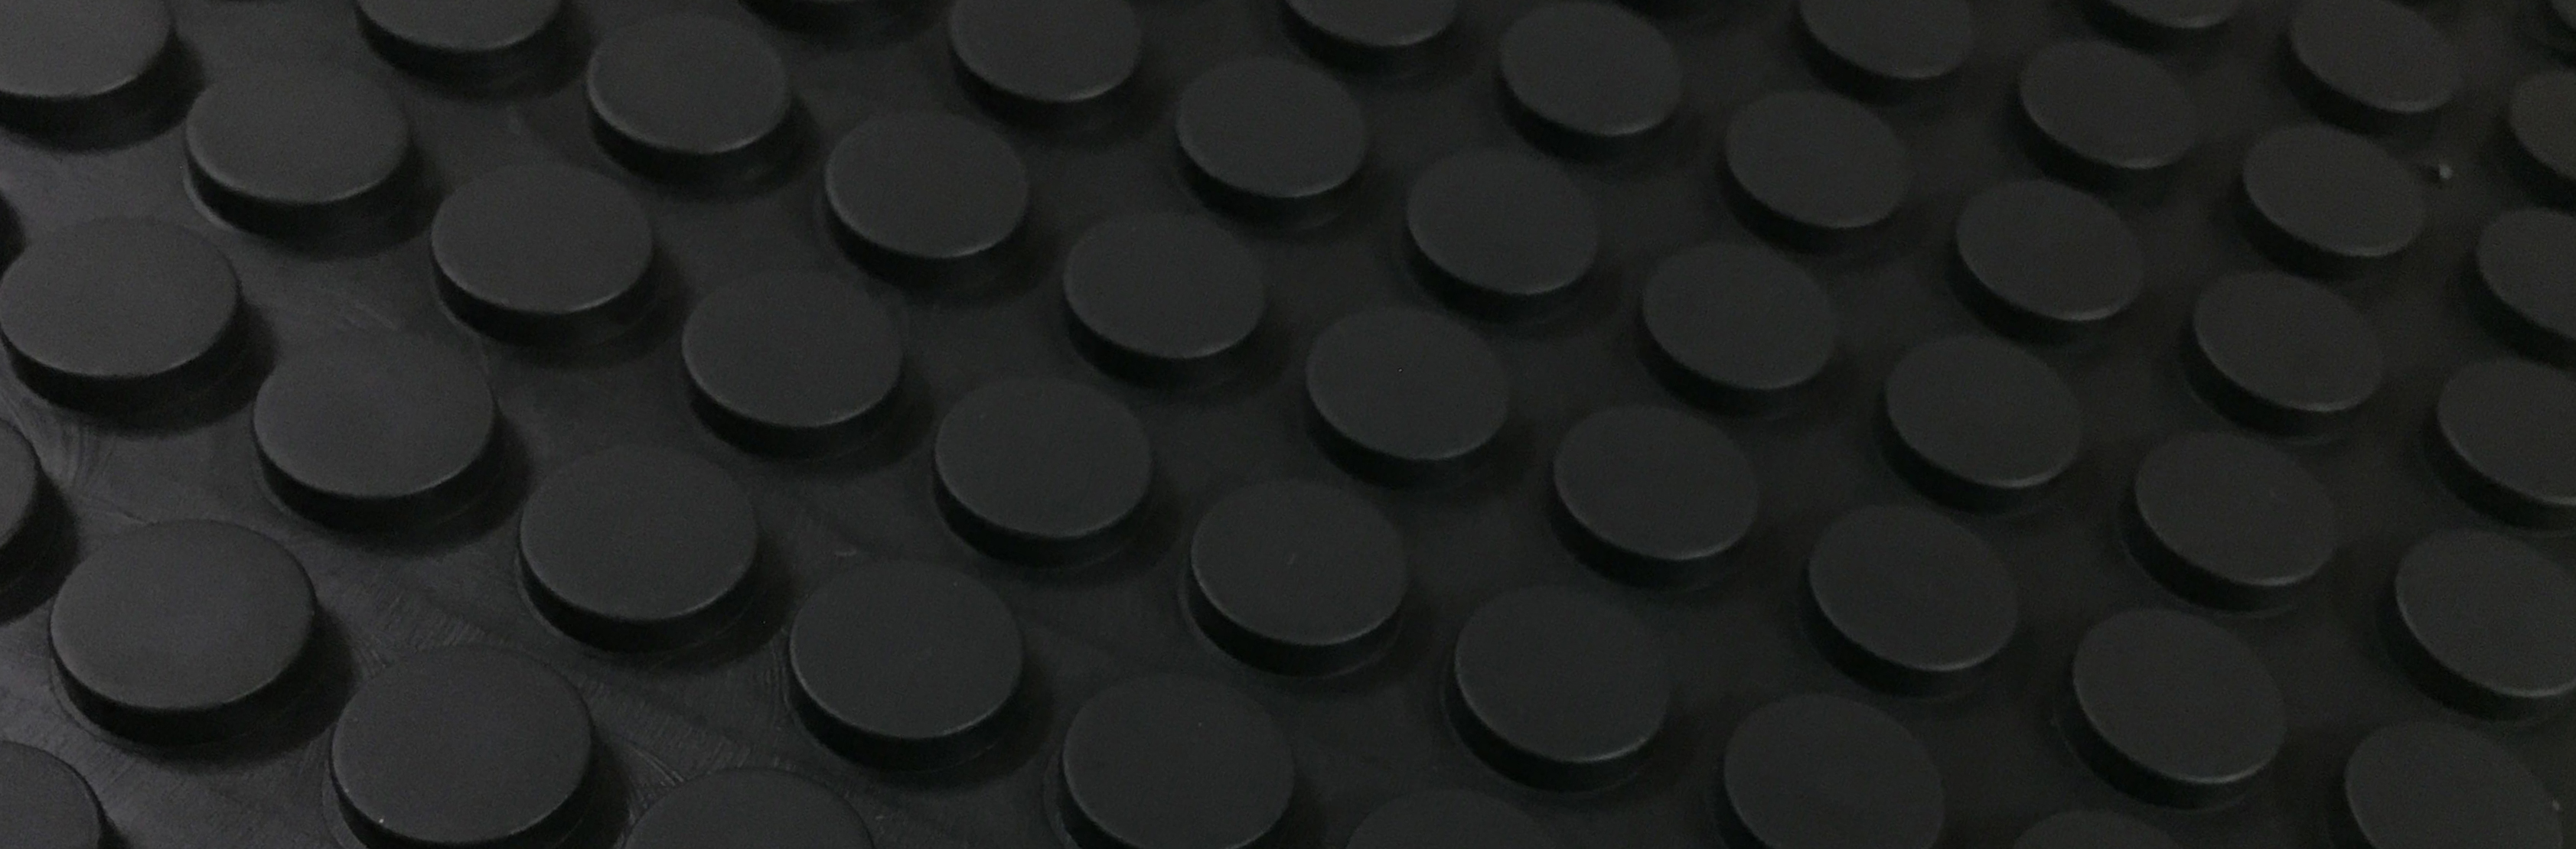 Adhesive Silicone Rubber Feet